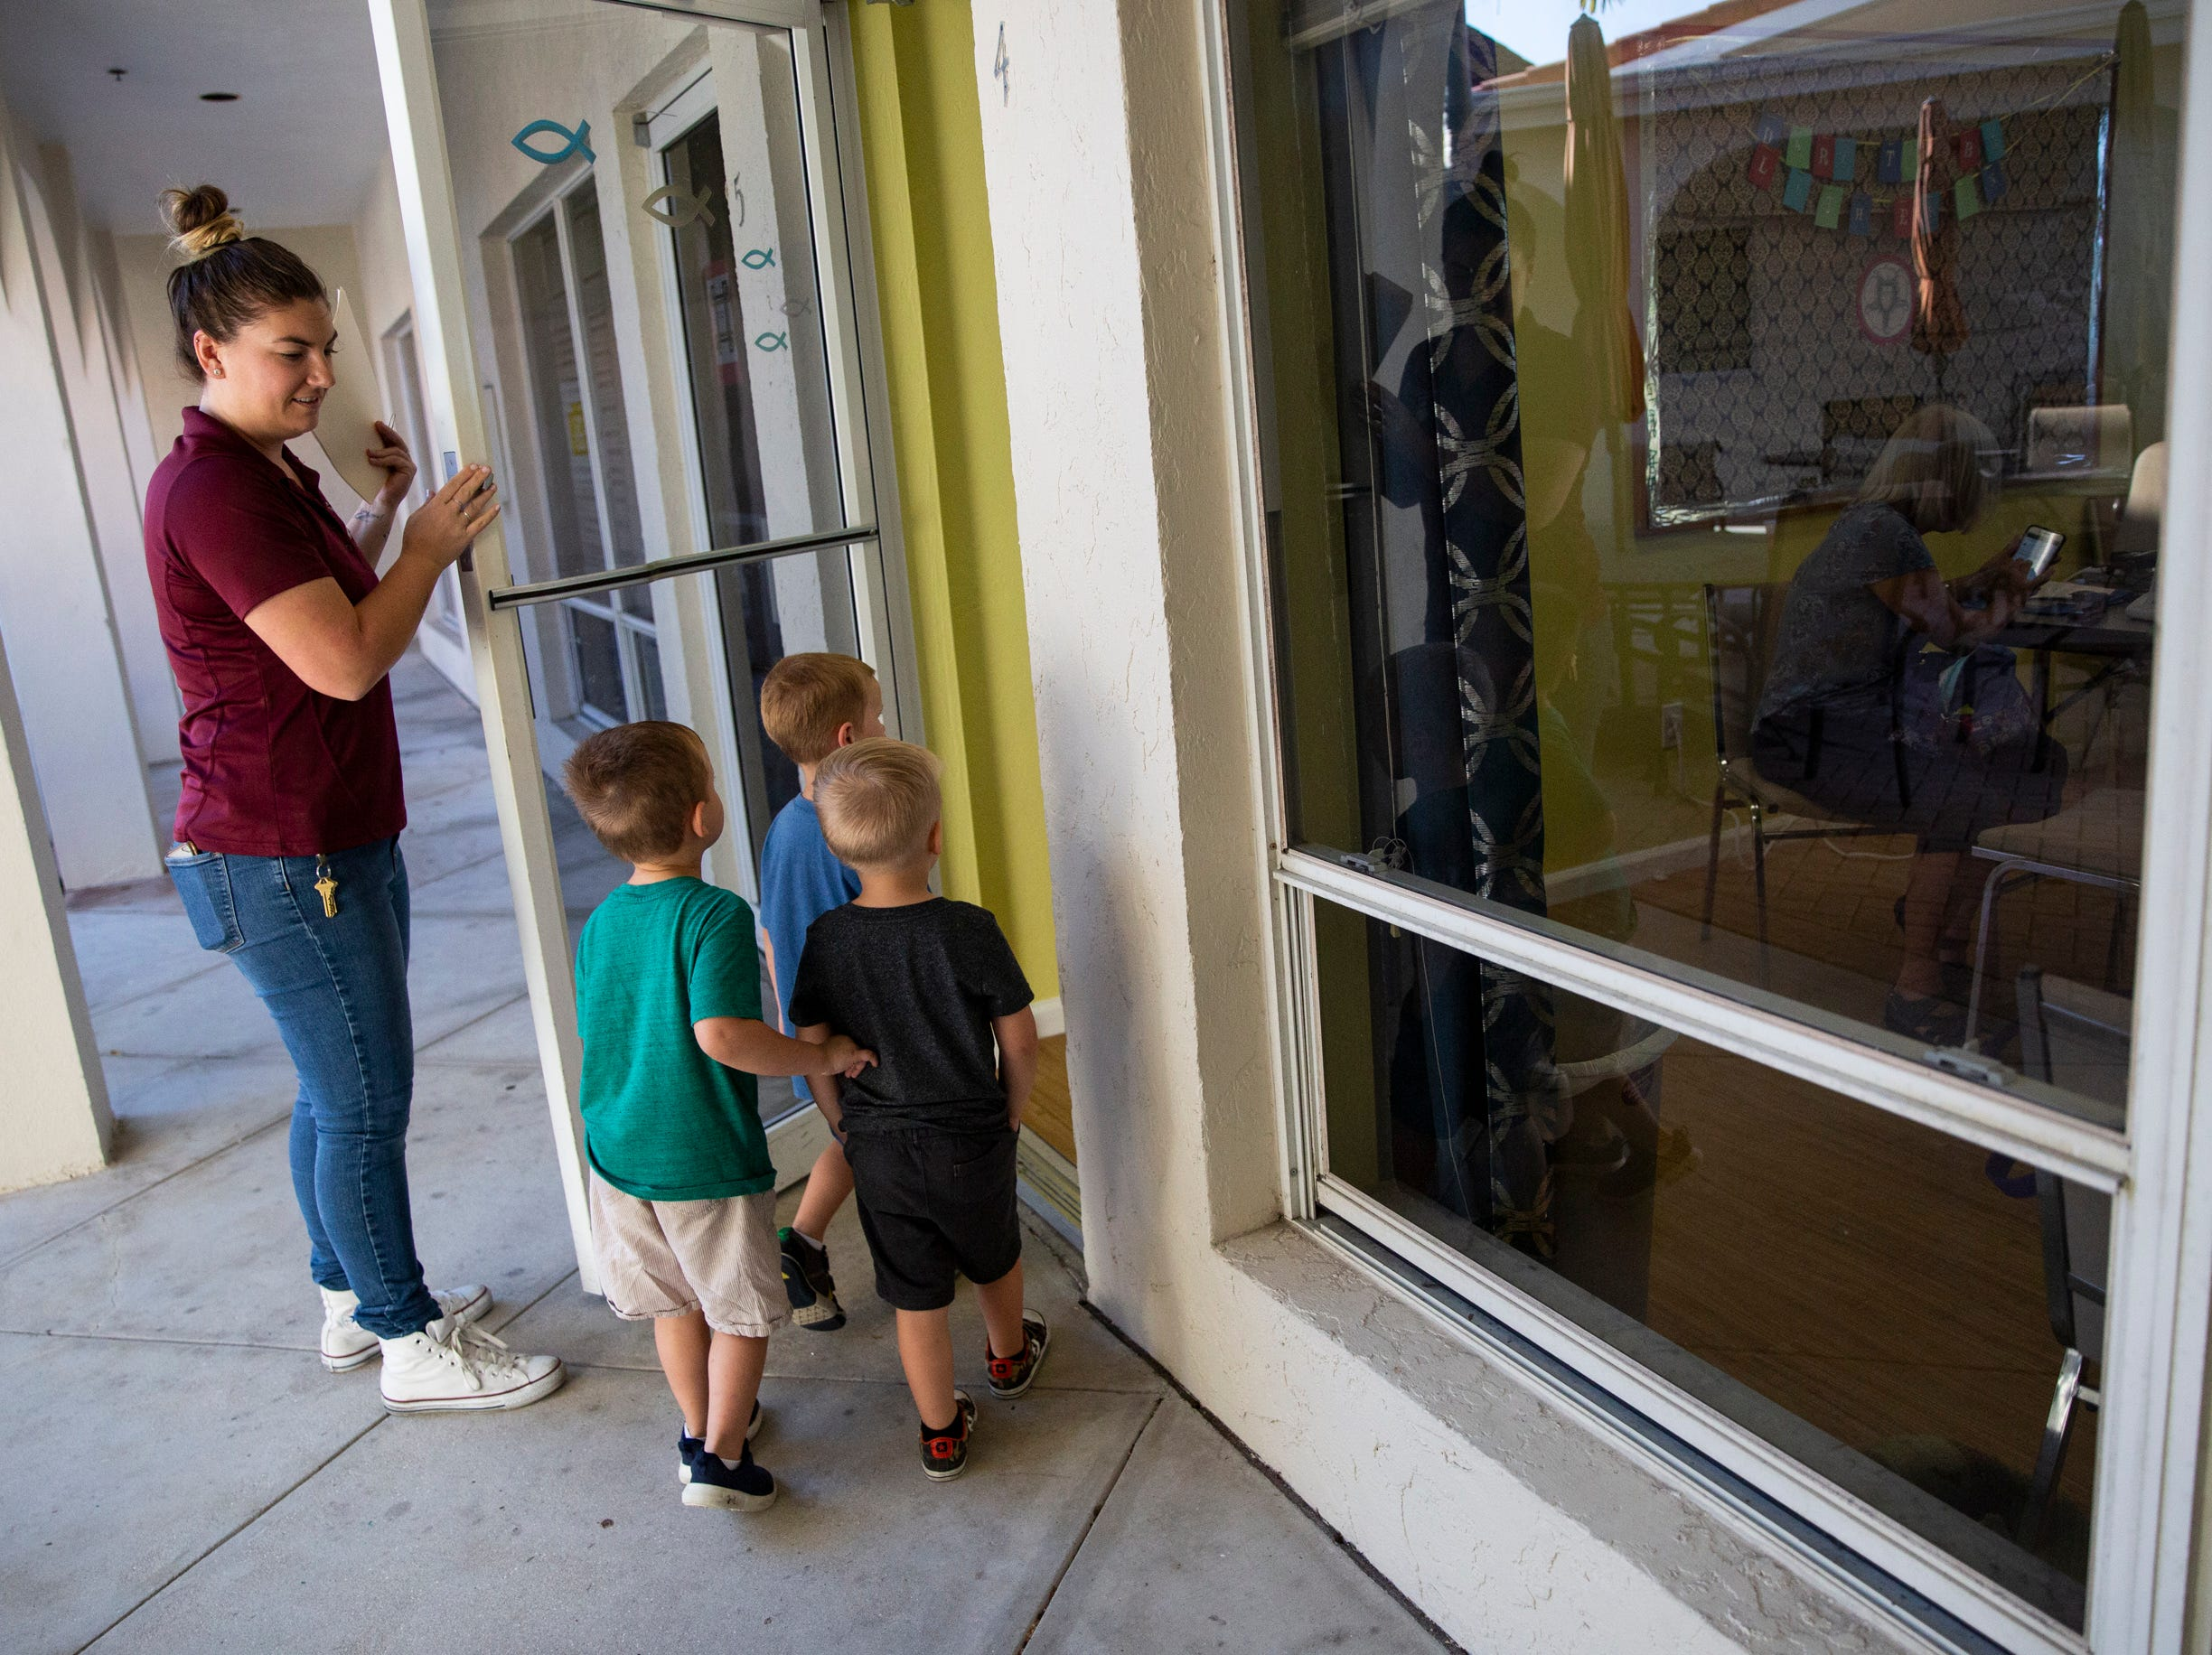 Preschool teacher Sissy Patton leads Carson Landis, 3, Logan Brann, 3, and Kingston Kellam, 4, into a room to have their hearing tested at Grace Lutheran Preschool in Naples on Friday, April 12, 2019.